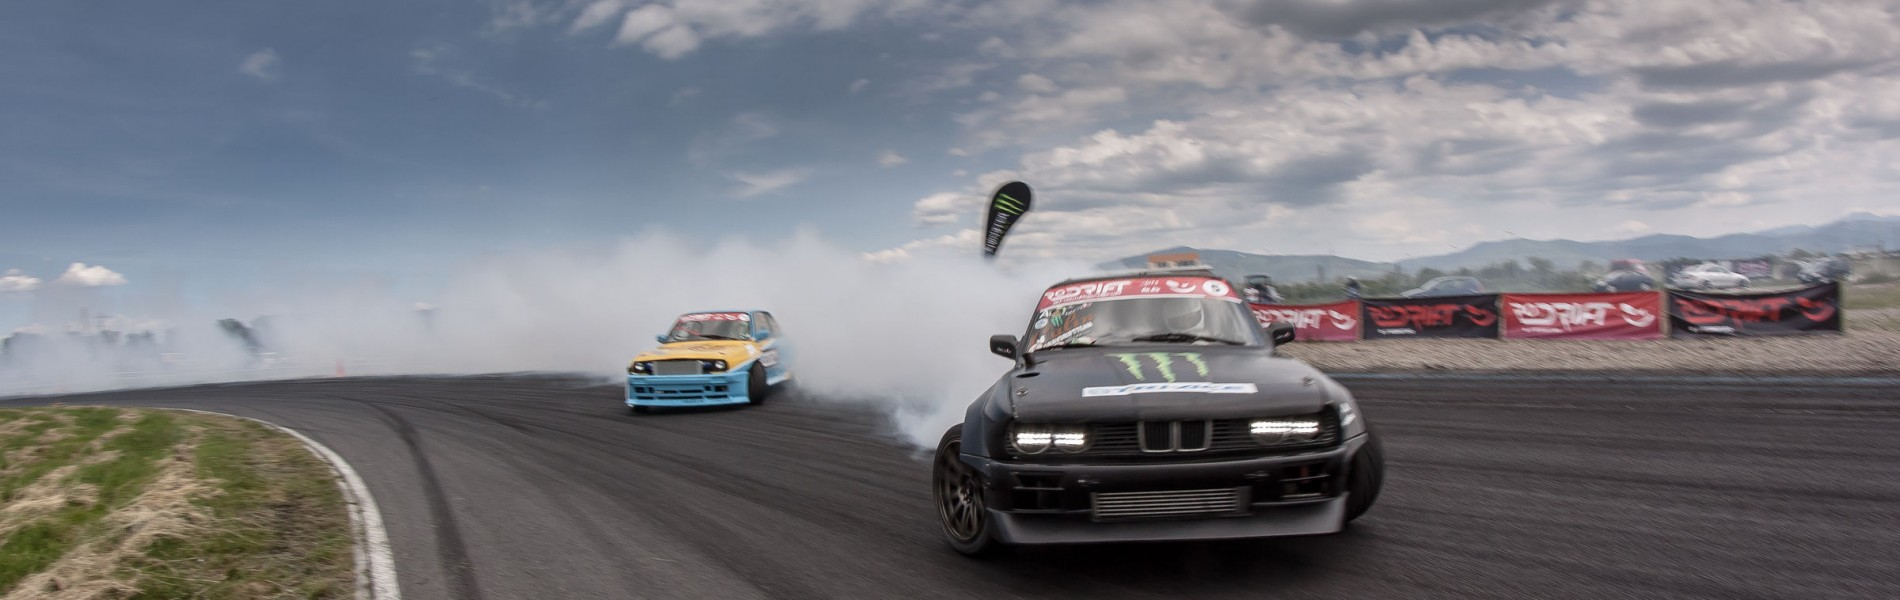 Event imagery taken at the second stage of the Romanian Drift Championship that took place in Prejmer, Romania. We also had a local drift athlete in the event, Calin Ciortan that won 1st prize.